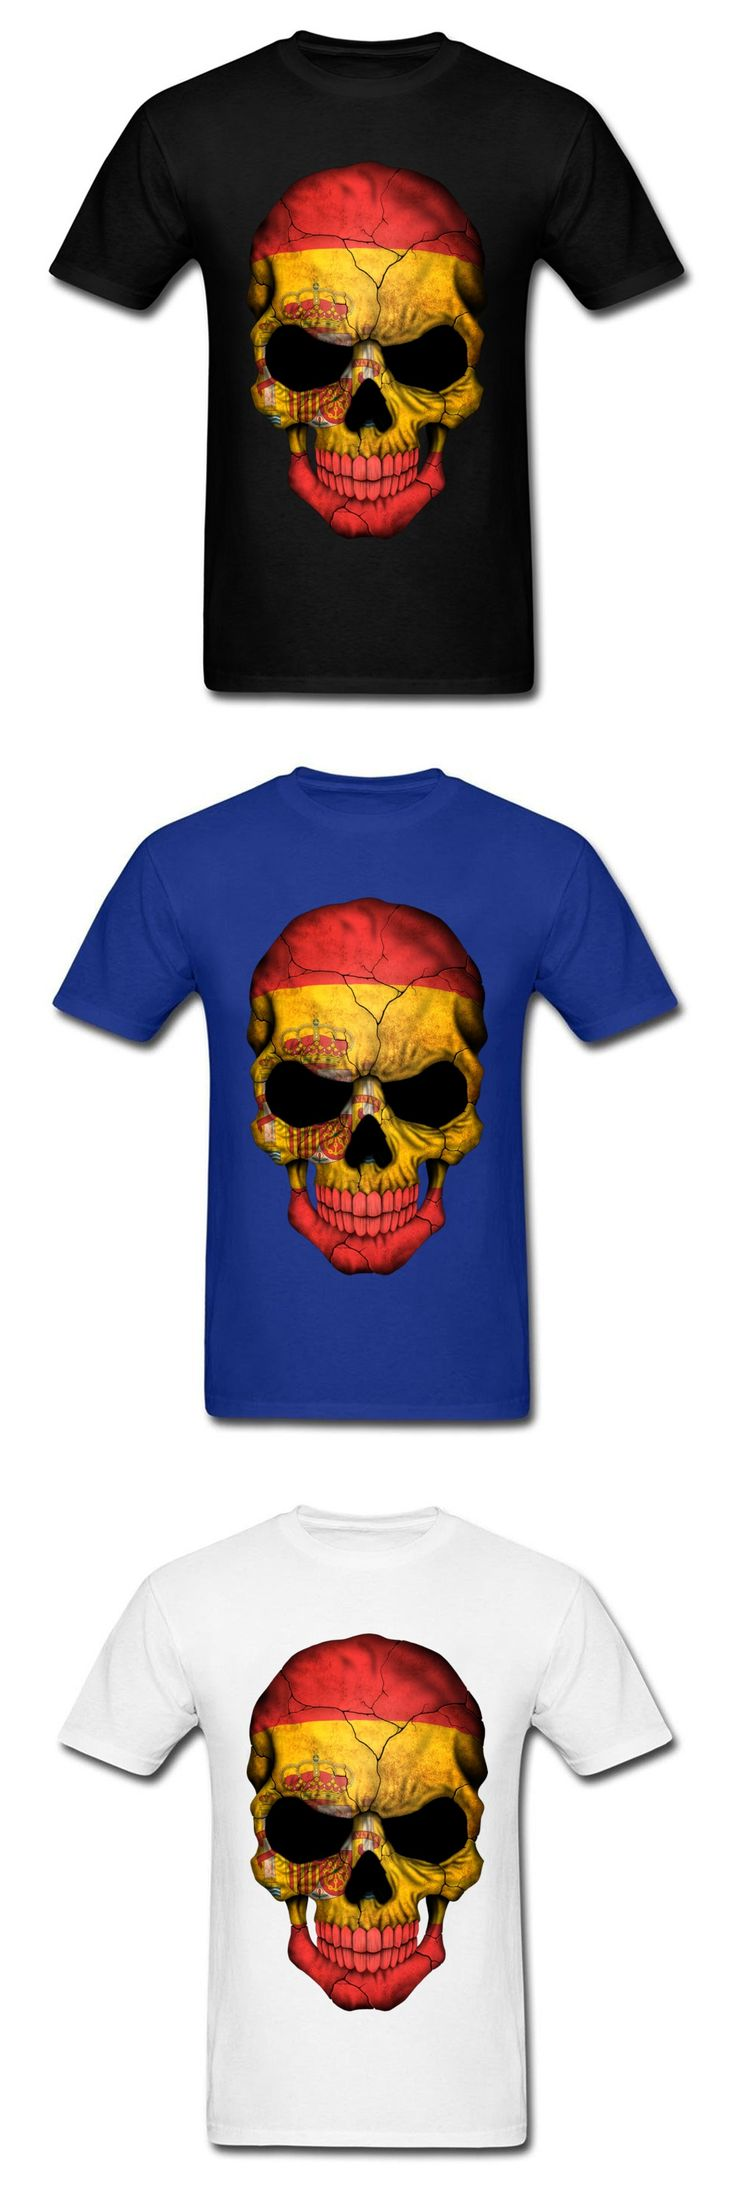 Best 25 spanish flags ideas on pinterest spanish culture world xxxl 2018 men t shirts spanish flag skull print cool family halloween customized clothing short sciox Image collections